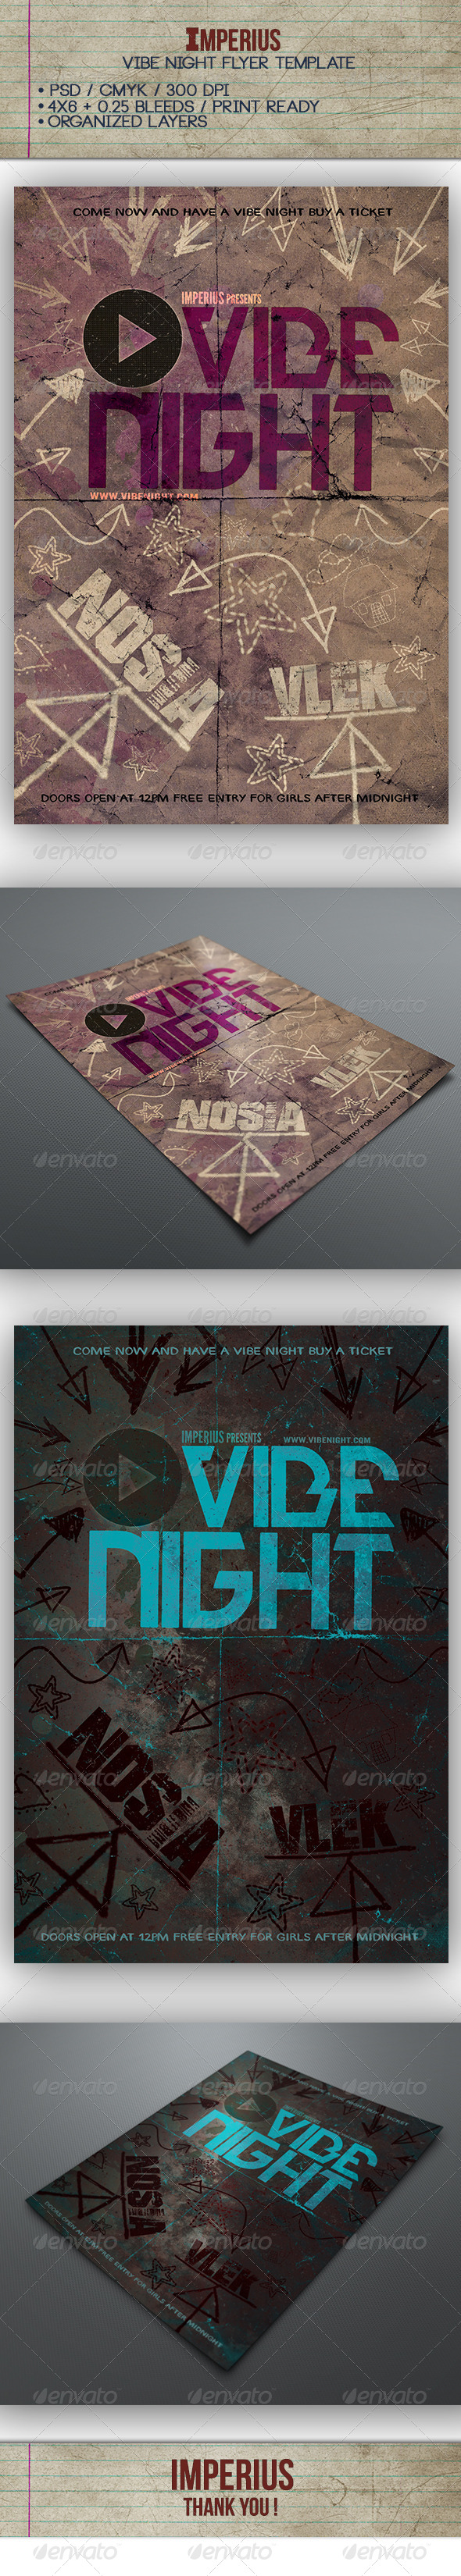 GraphicRiver Vibe Night Flyer 7341502